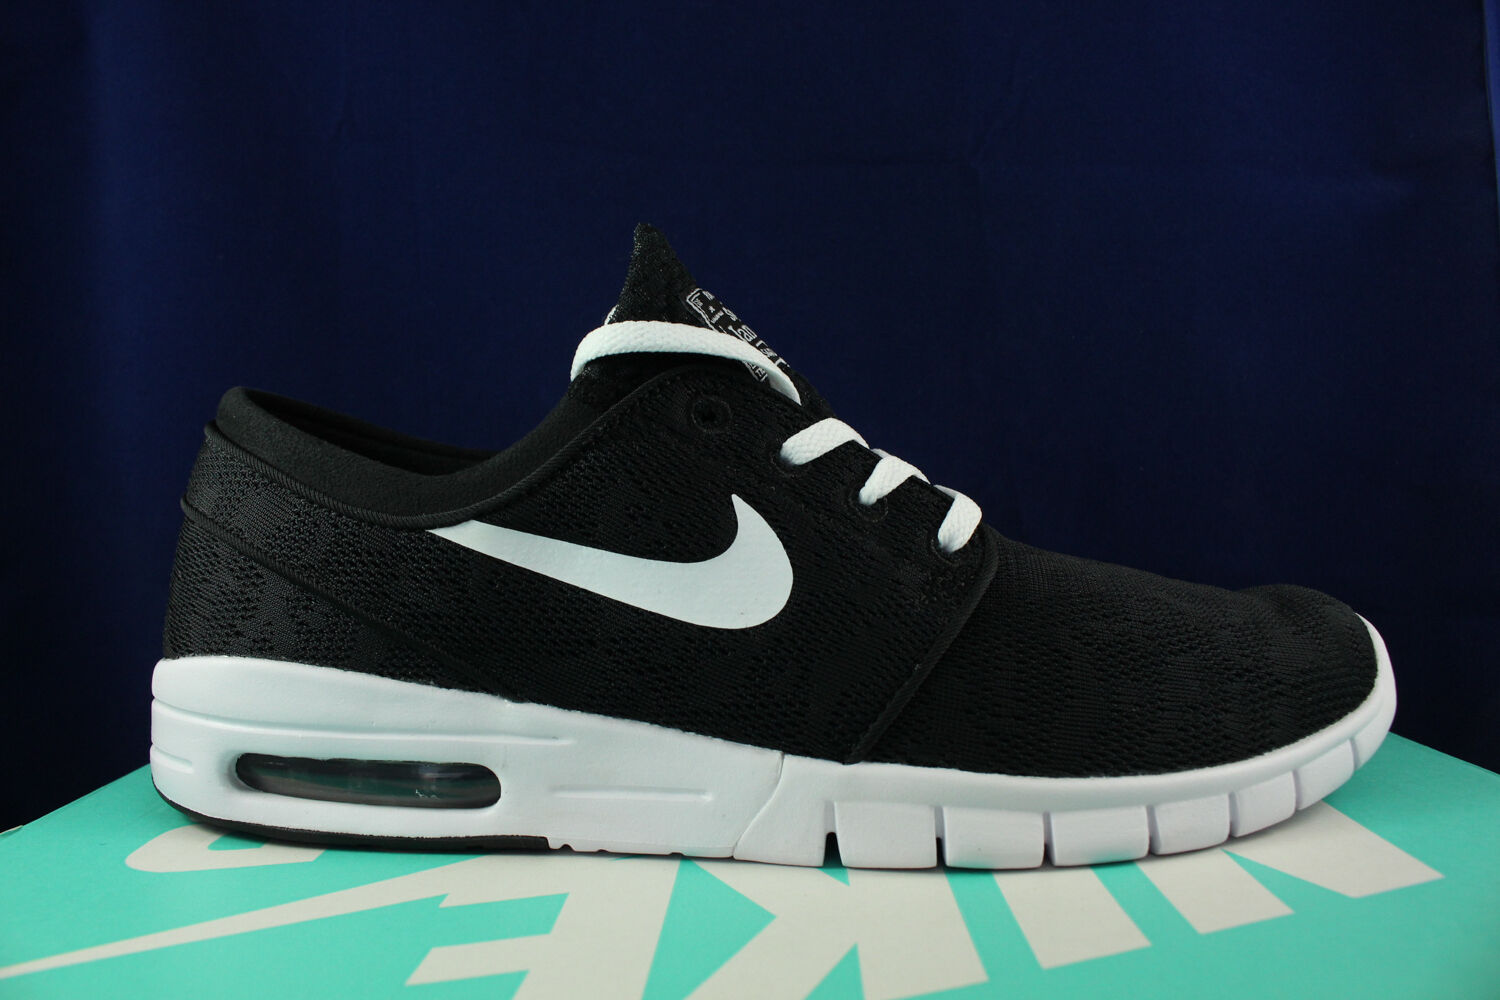 NIKE STEFAN JANOSKI MAX SB BLACK WHITE MESH 631303 010 Price reduction